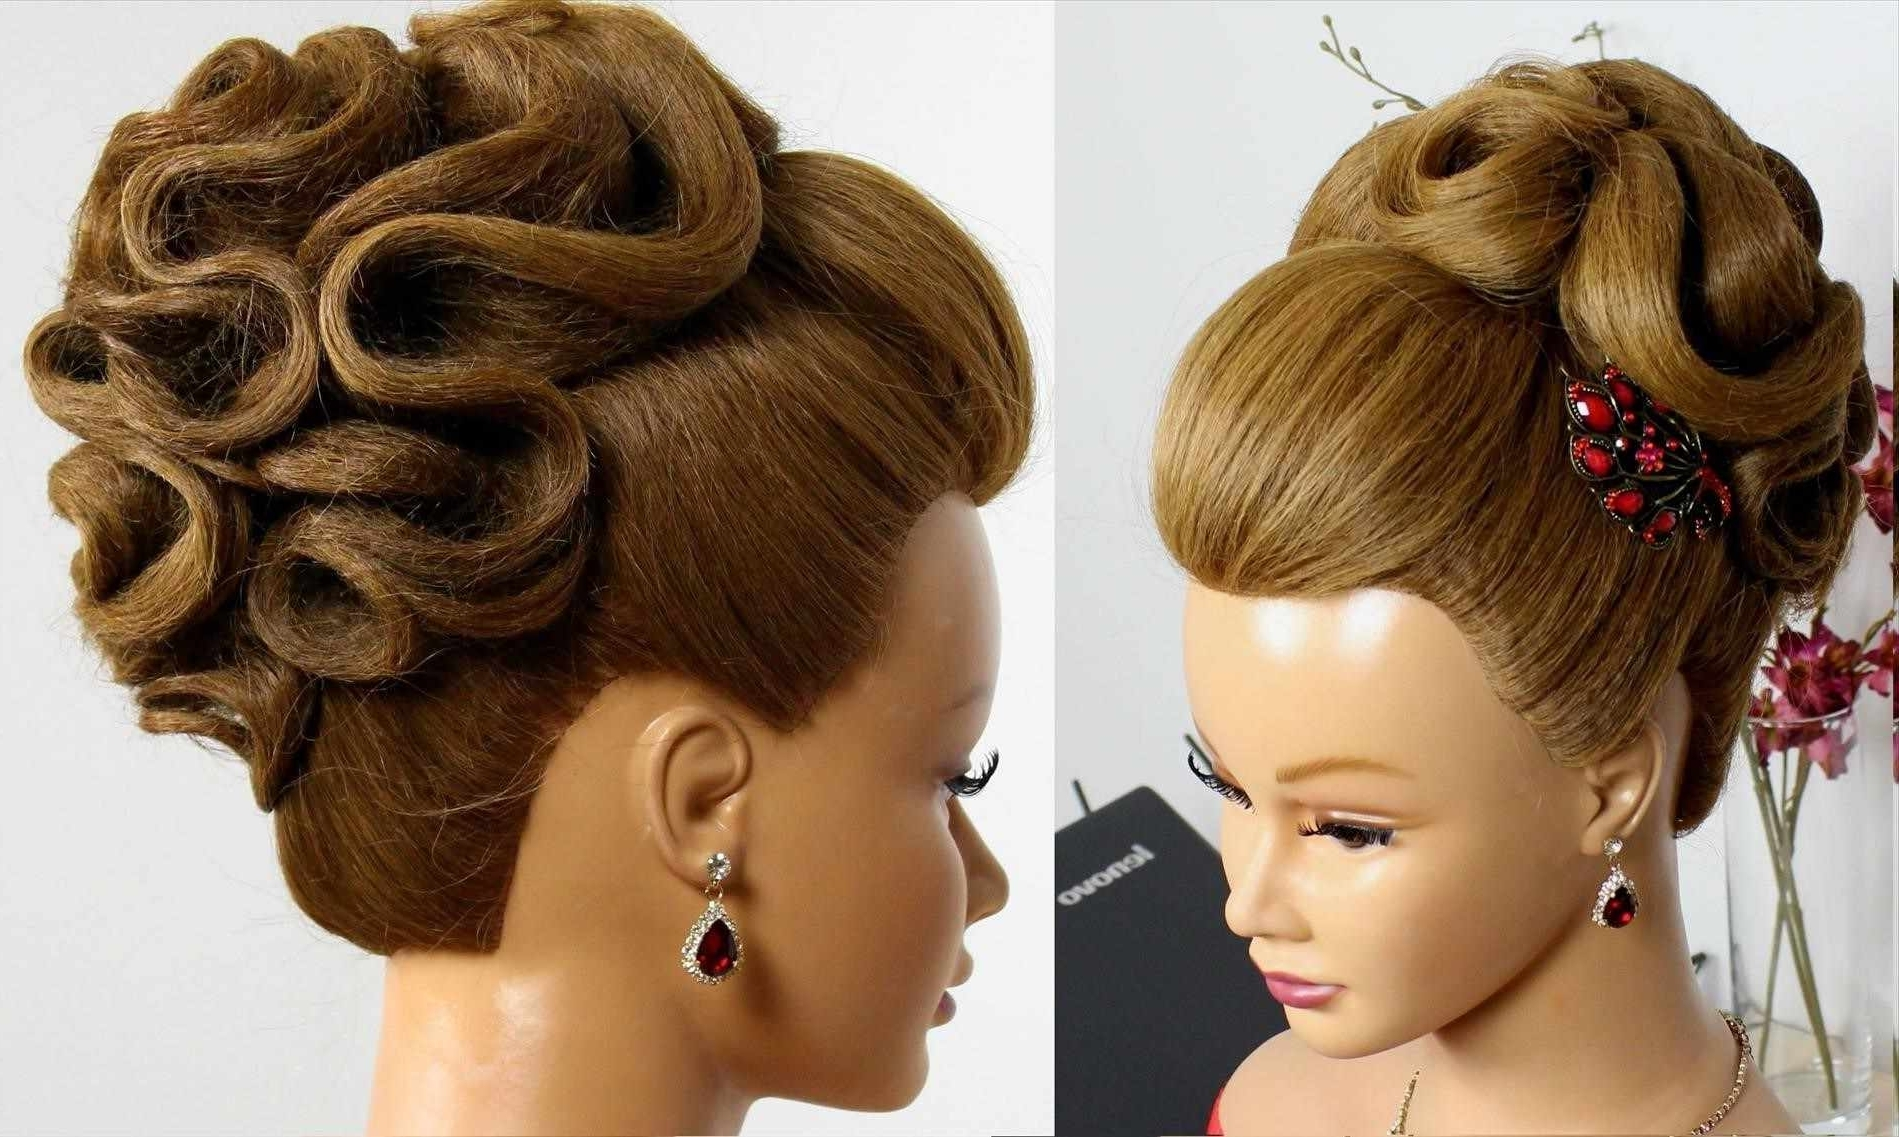 Captivating Black Bride Updo Hairstyles For Your Long Hair Wedding Throughout Black Bride Updo Hairstyles (View 8 of 15)